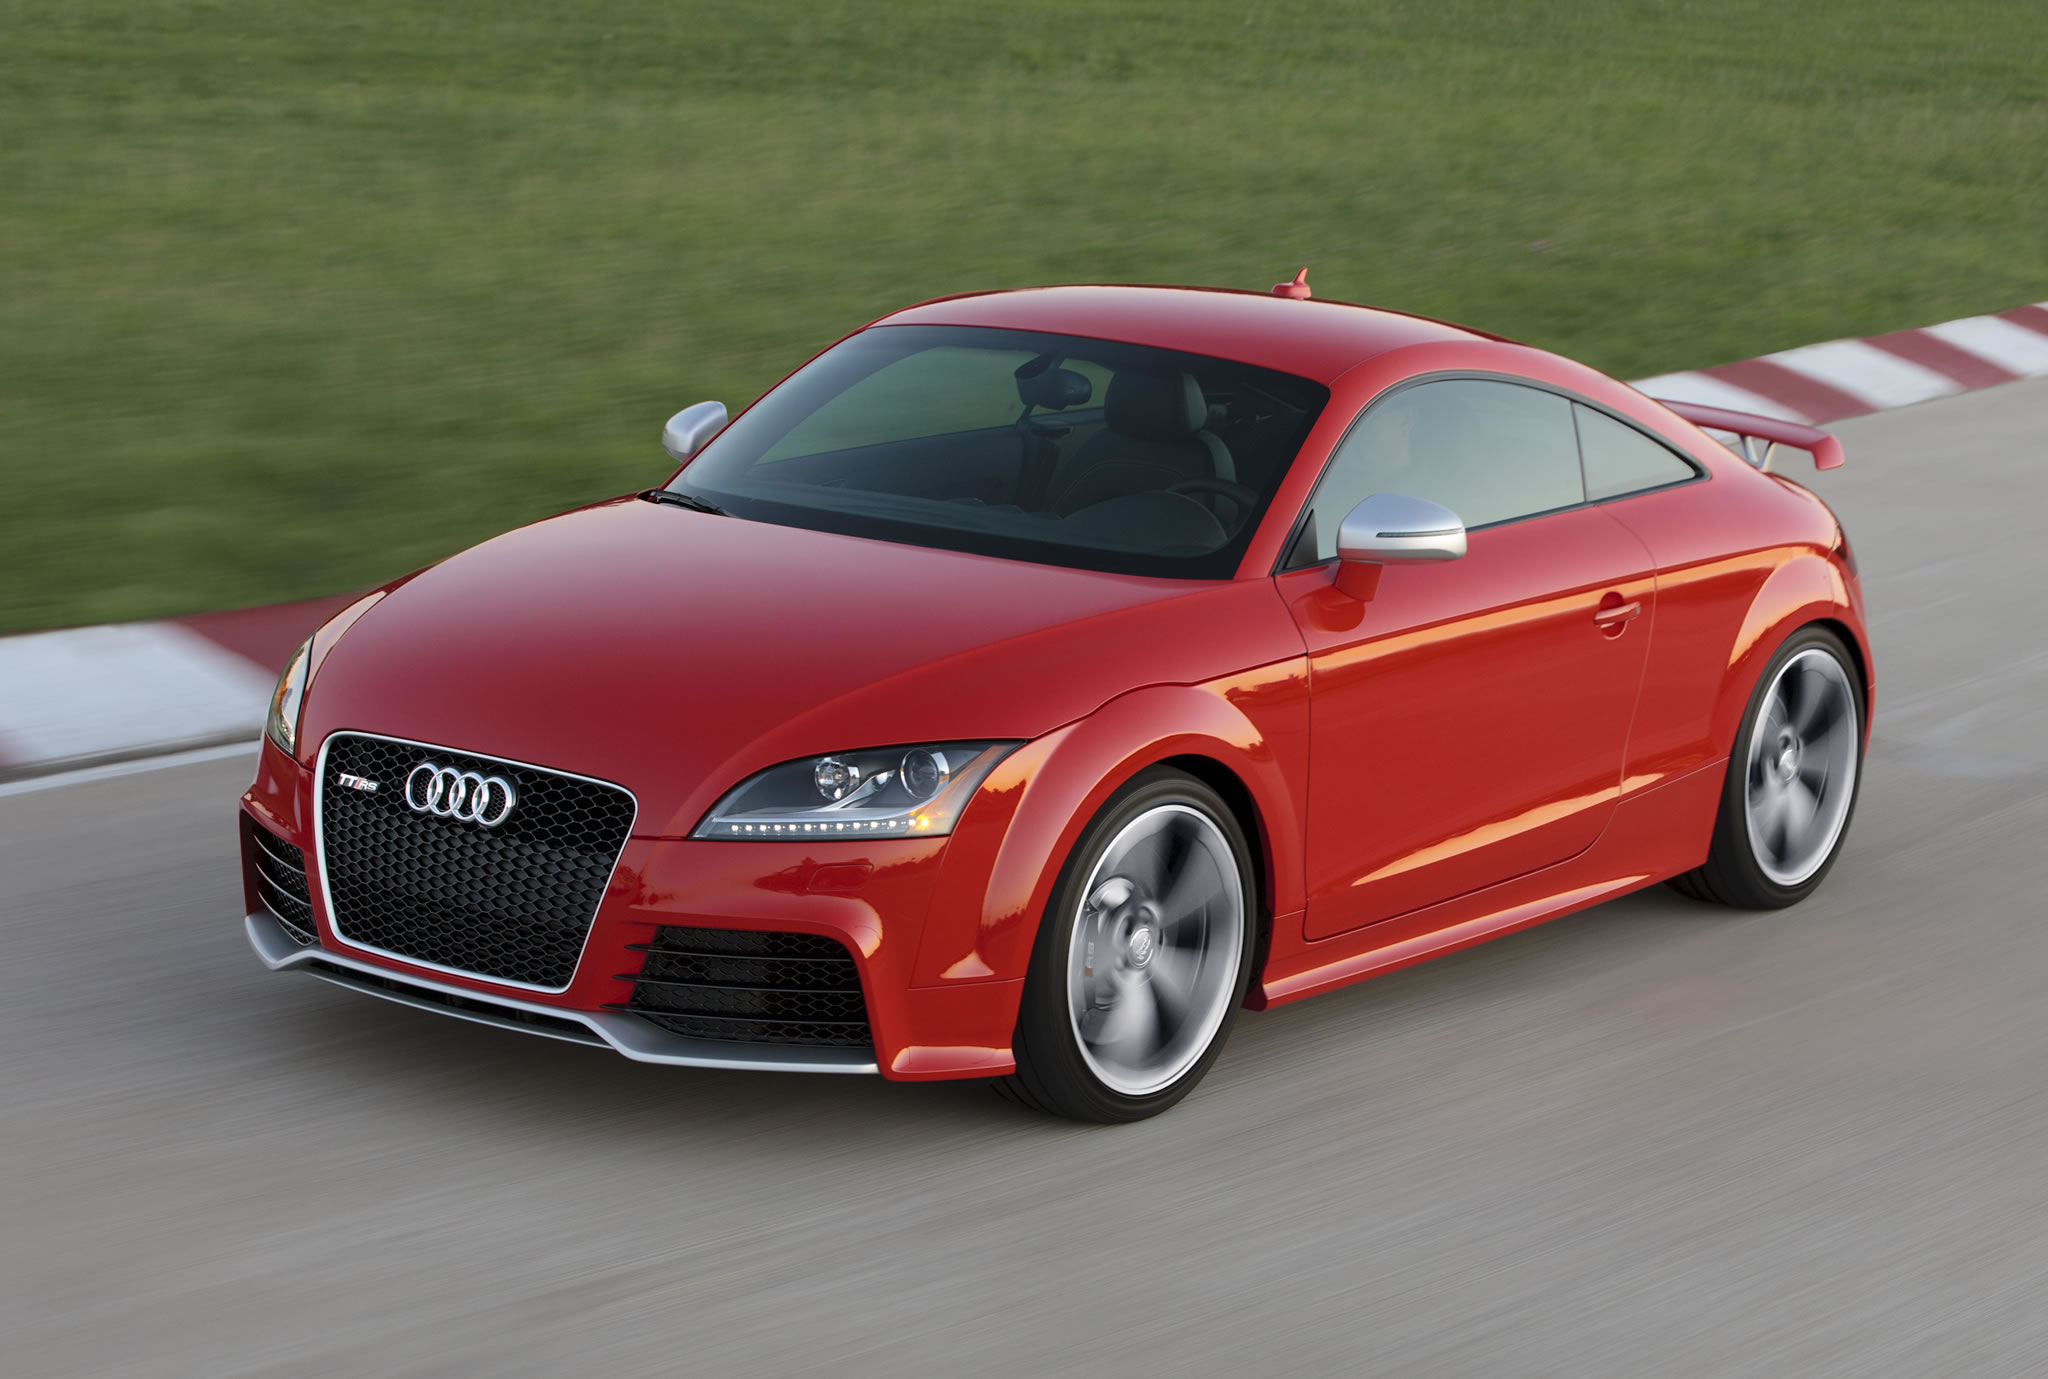 2013 Audi TT RS Photos, Specs and Review - RS